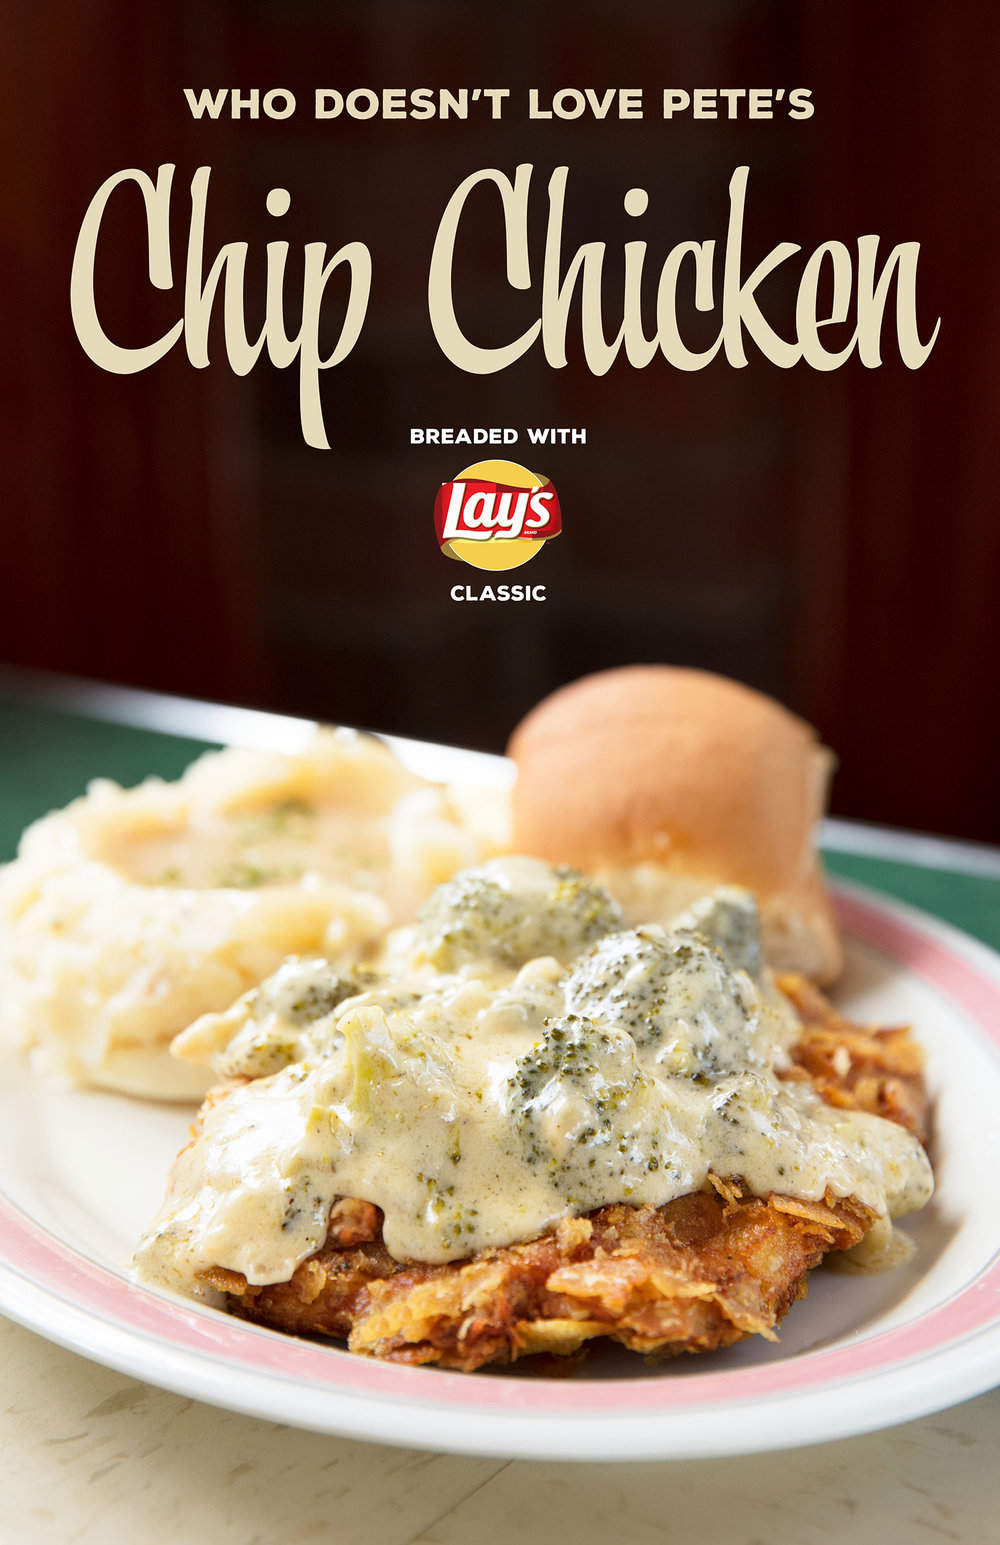 Pete & Shorty's Chip Chicken